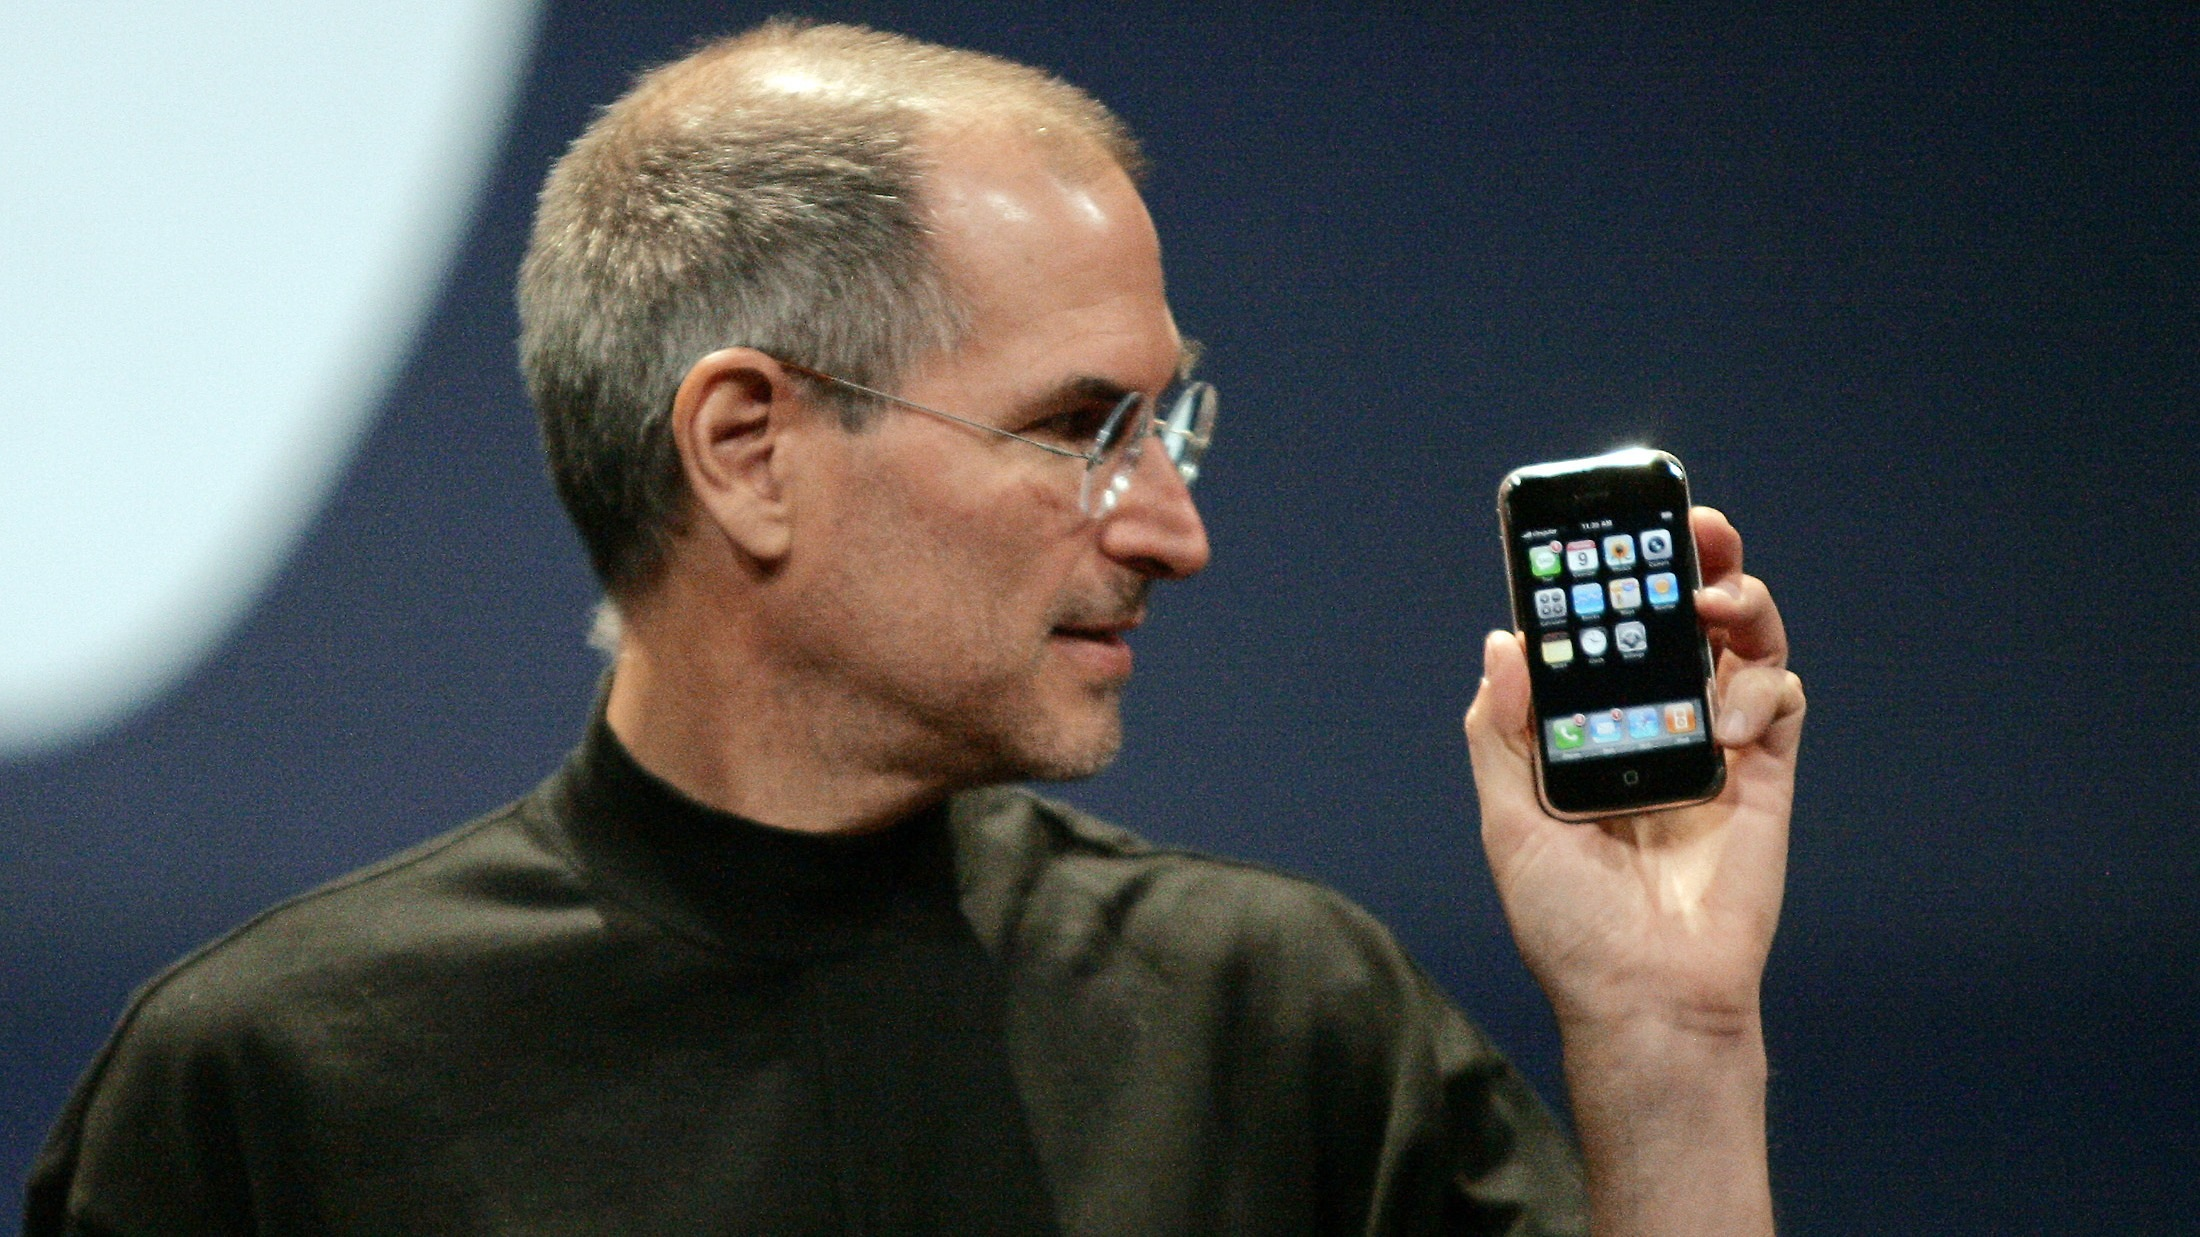 Apple Computer Inc. Chief Executive Officer Steve Jobs holds the new iPhone in San Francisco, California January 9, 2007. Apple unveiled an eagerly-anticipated iPod mobile phone with a touch-screen on Tuesday, priced at $599 for 8 gigabytes of memory, pushing the company's shares up as much as 8.5 percent. Jobs said the iPhone, which also will be available in a 4-gigabyte model for $499, will ship in June in the United States. The phones will be available in Europe in the fourth quarter and in Asia in 2008. REUTERS/Kimberly White